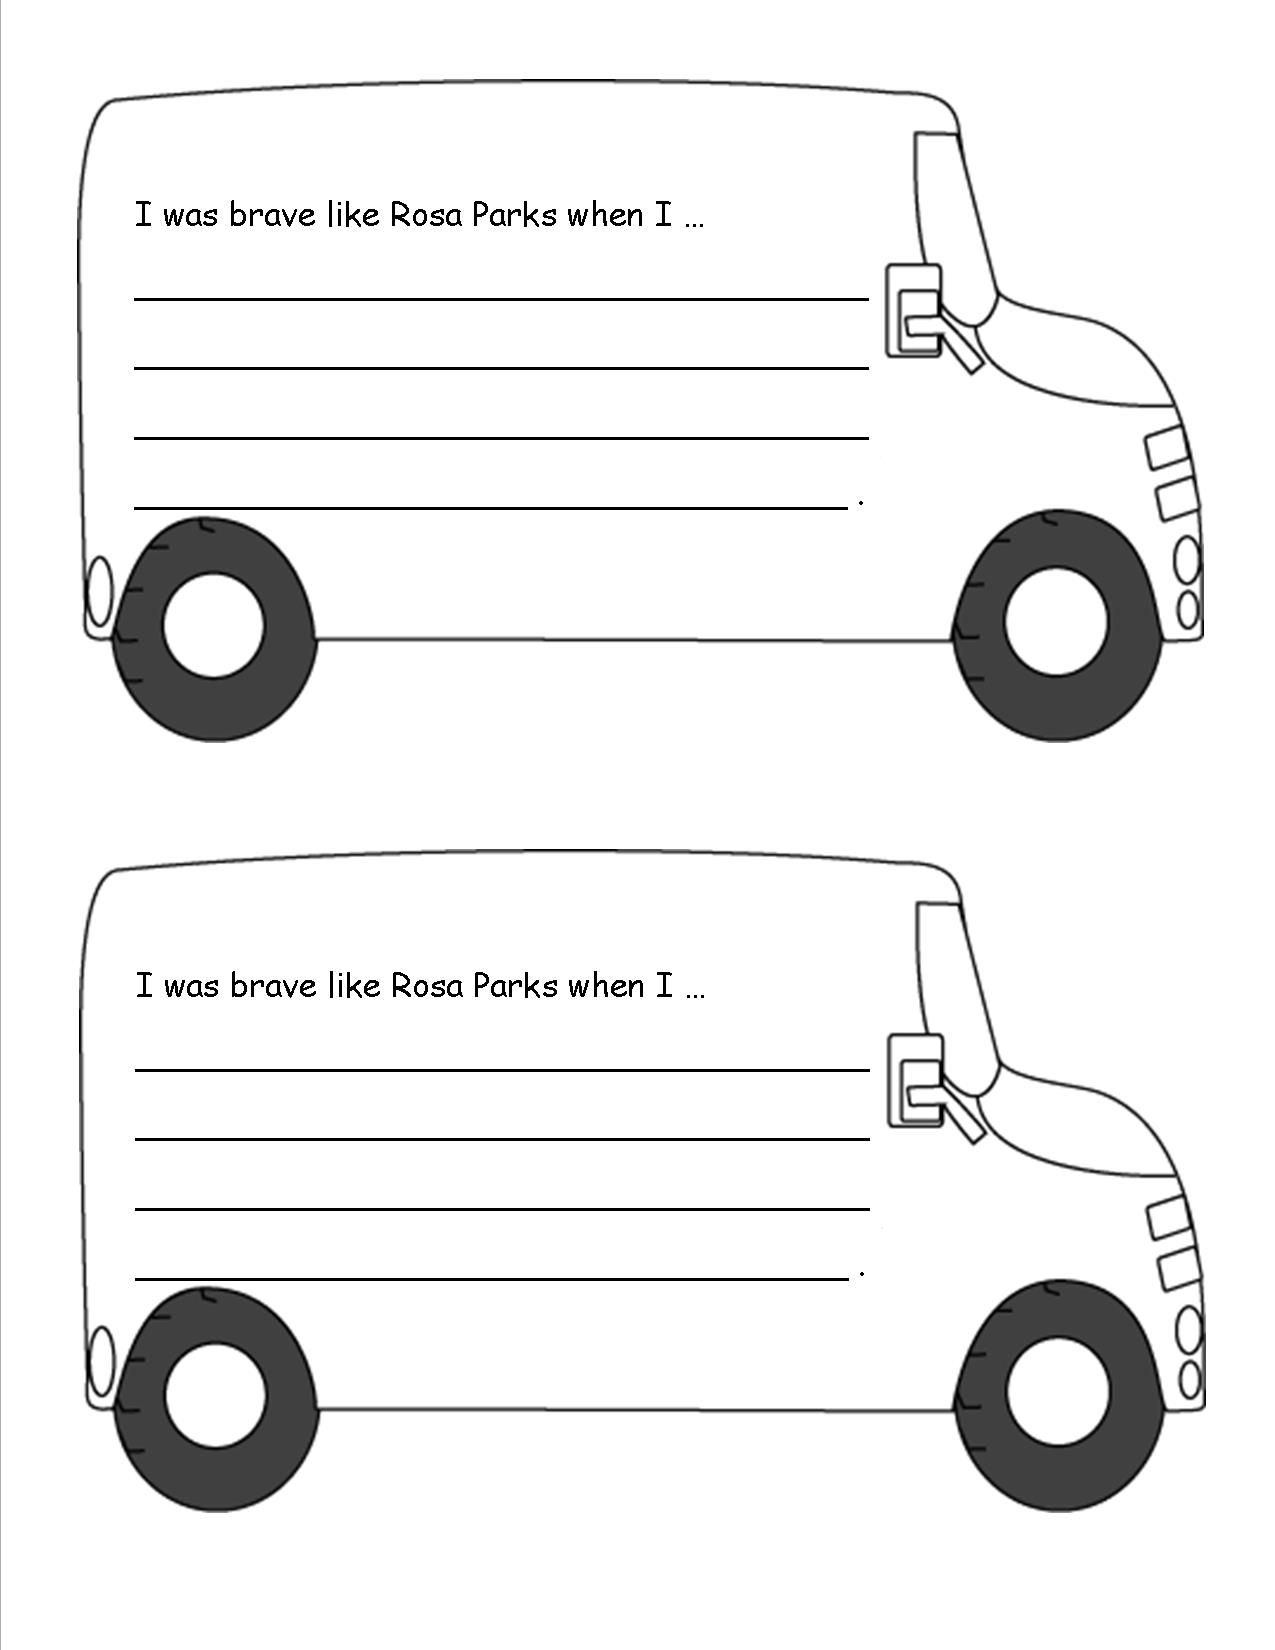 hight resolution of rosa parks worksheet this activity is great for students learning about rosa parks during black history month they can relate to rosa parks by explaining